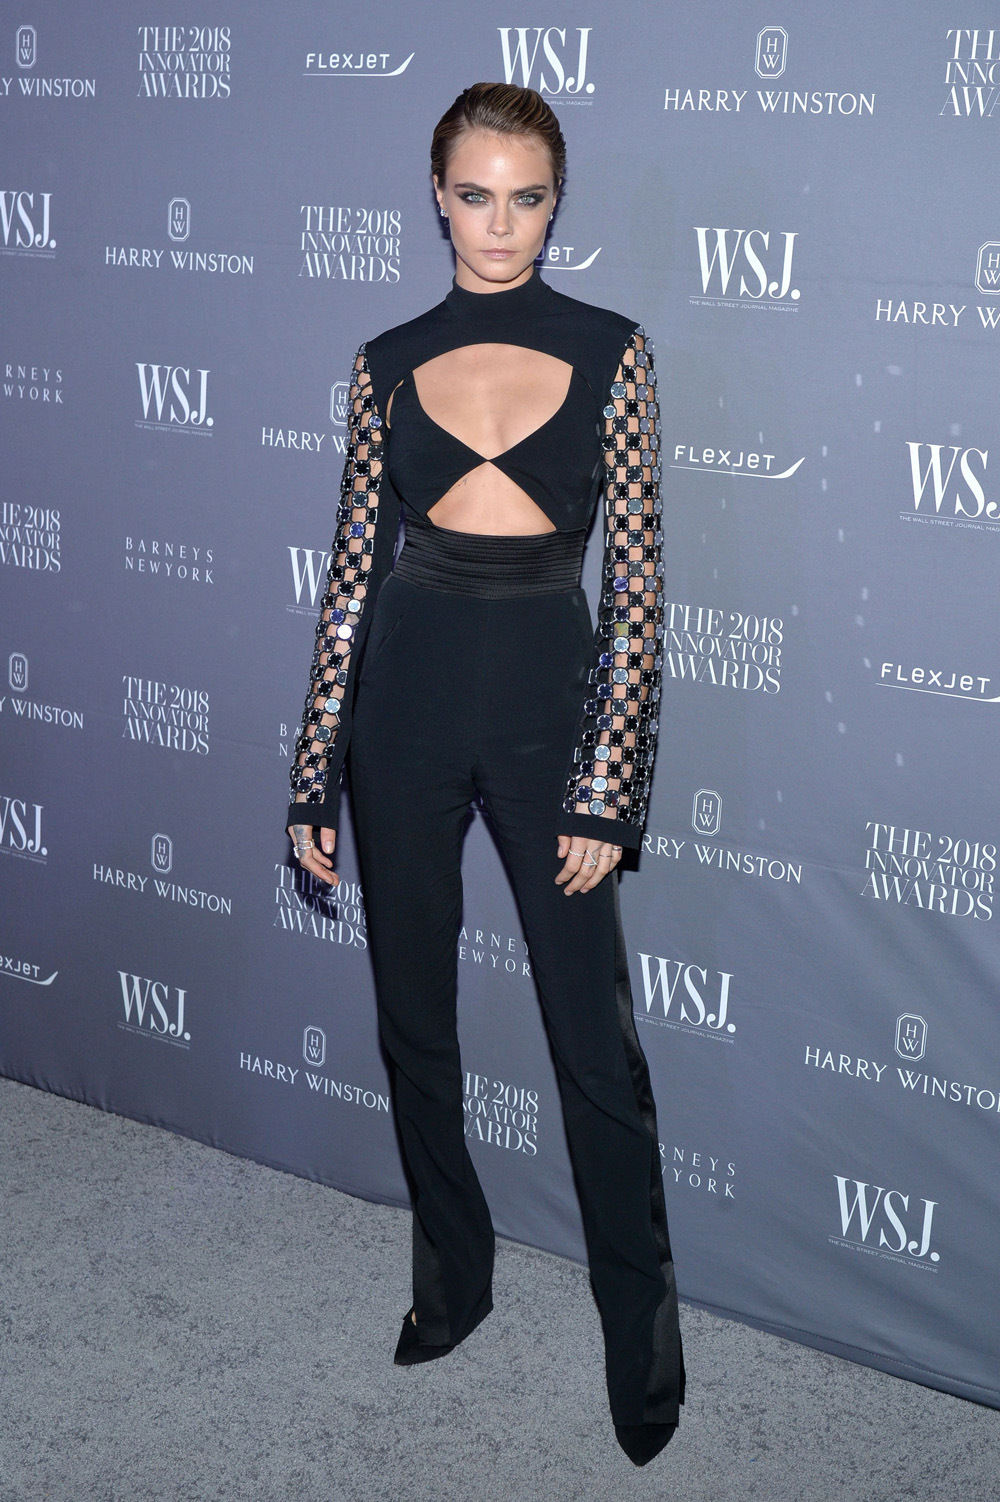 Cara Delevingne is blonde bombshell in backless black outfit featuring torso cutouts at Innovator Awards